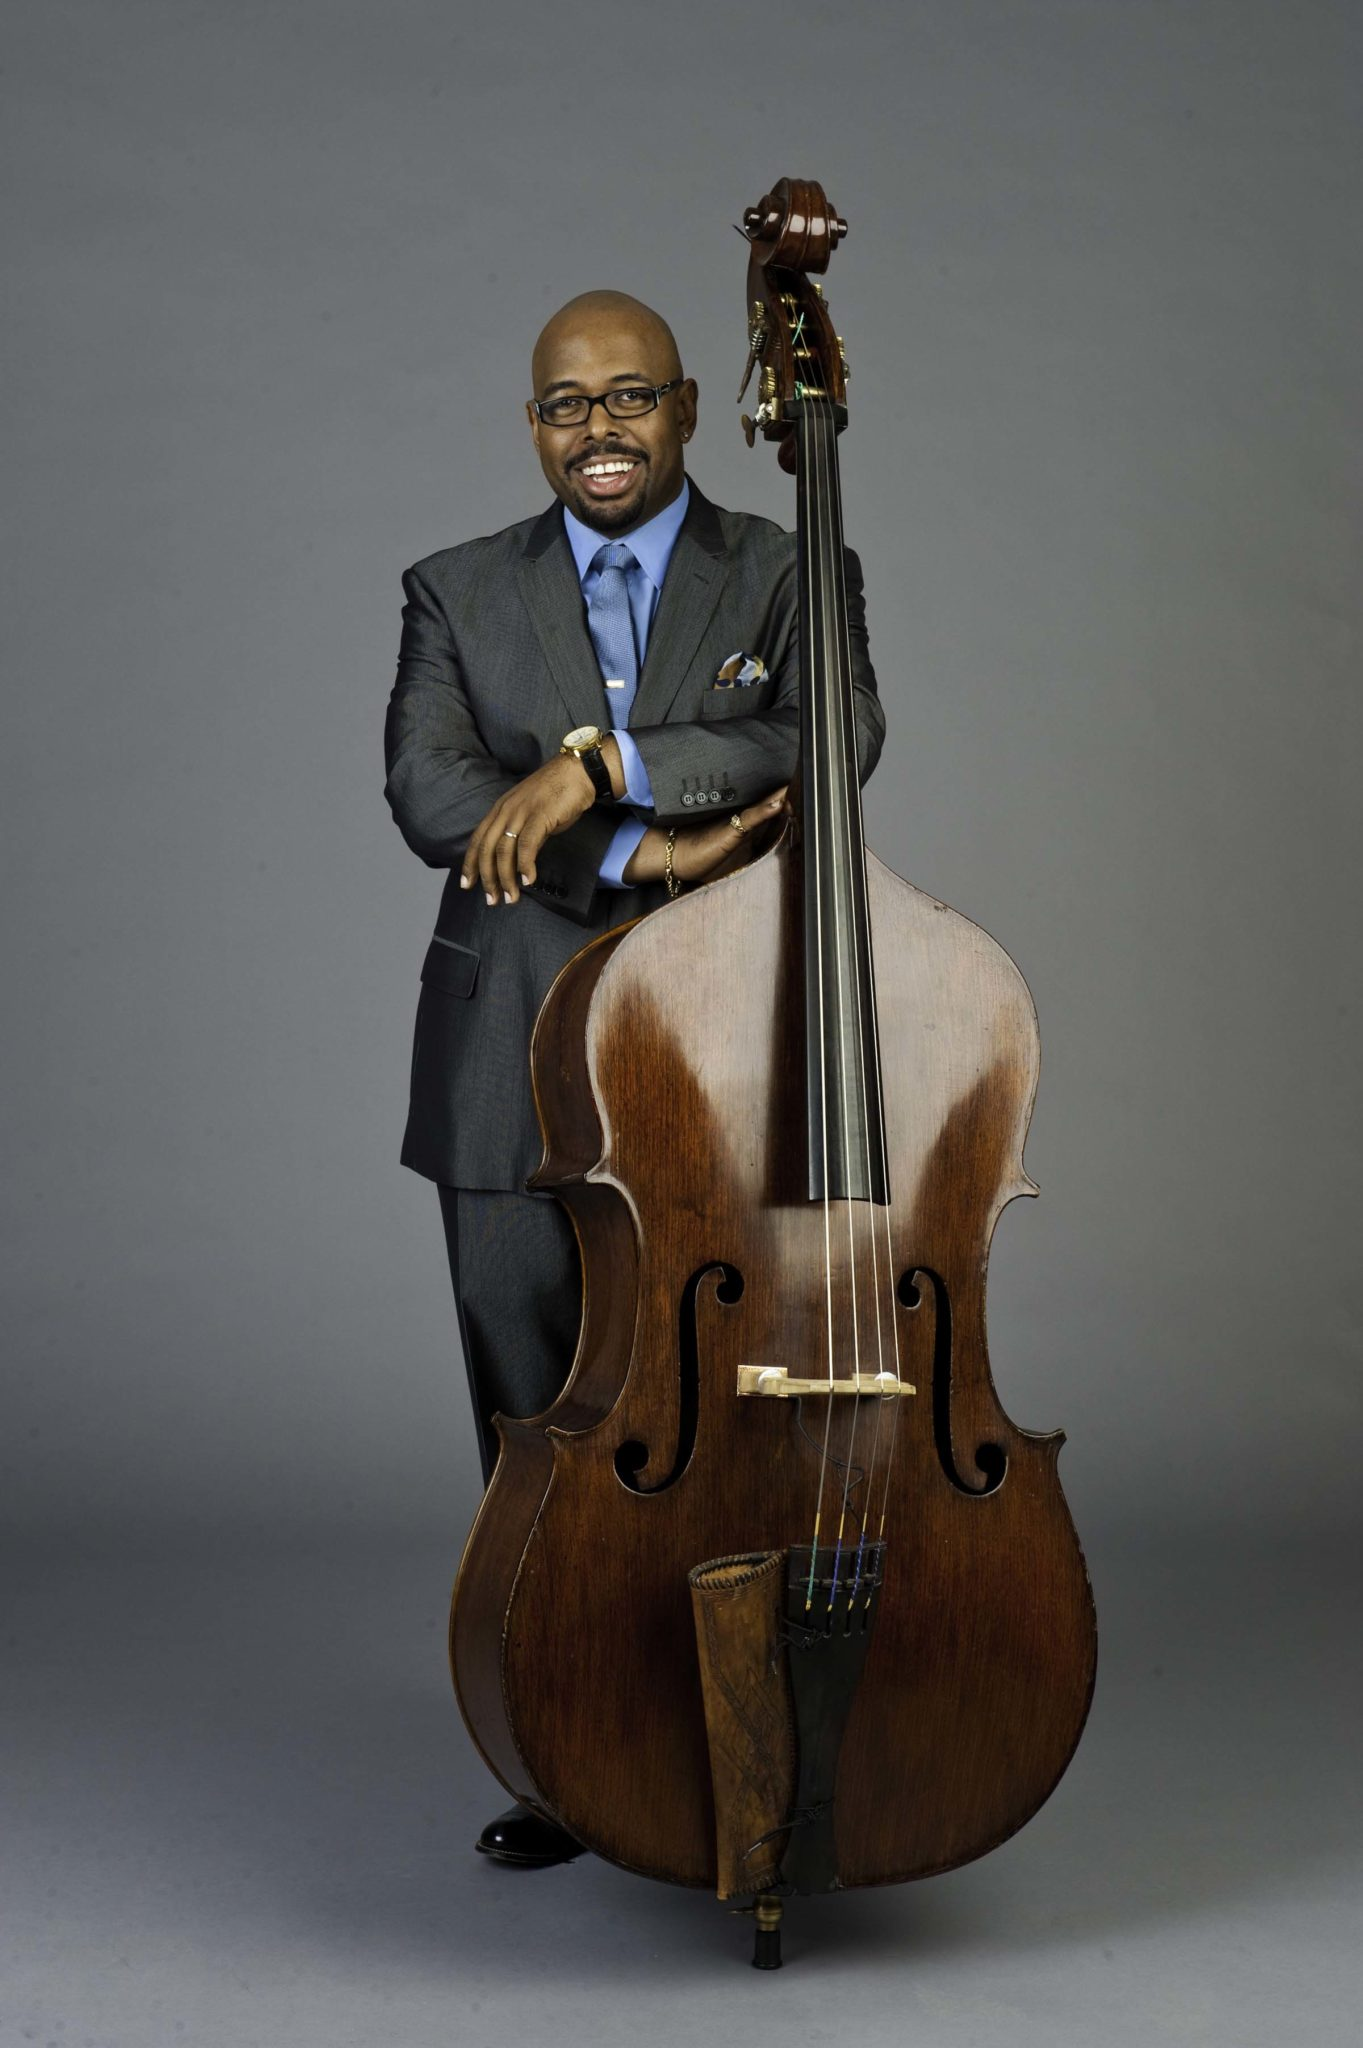 Christian McBride, Artistic Chair for Jazz House Kids